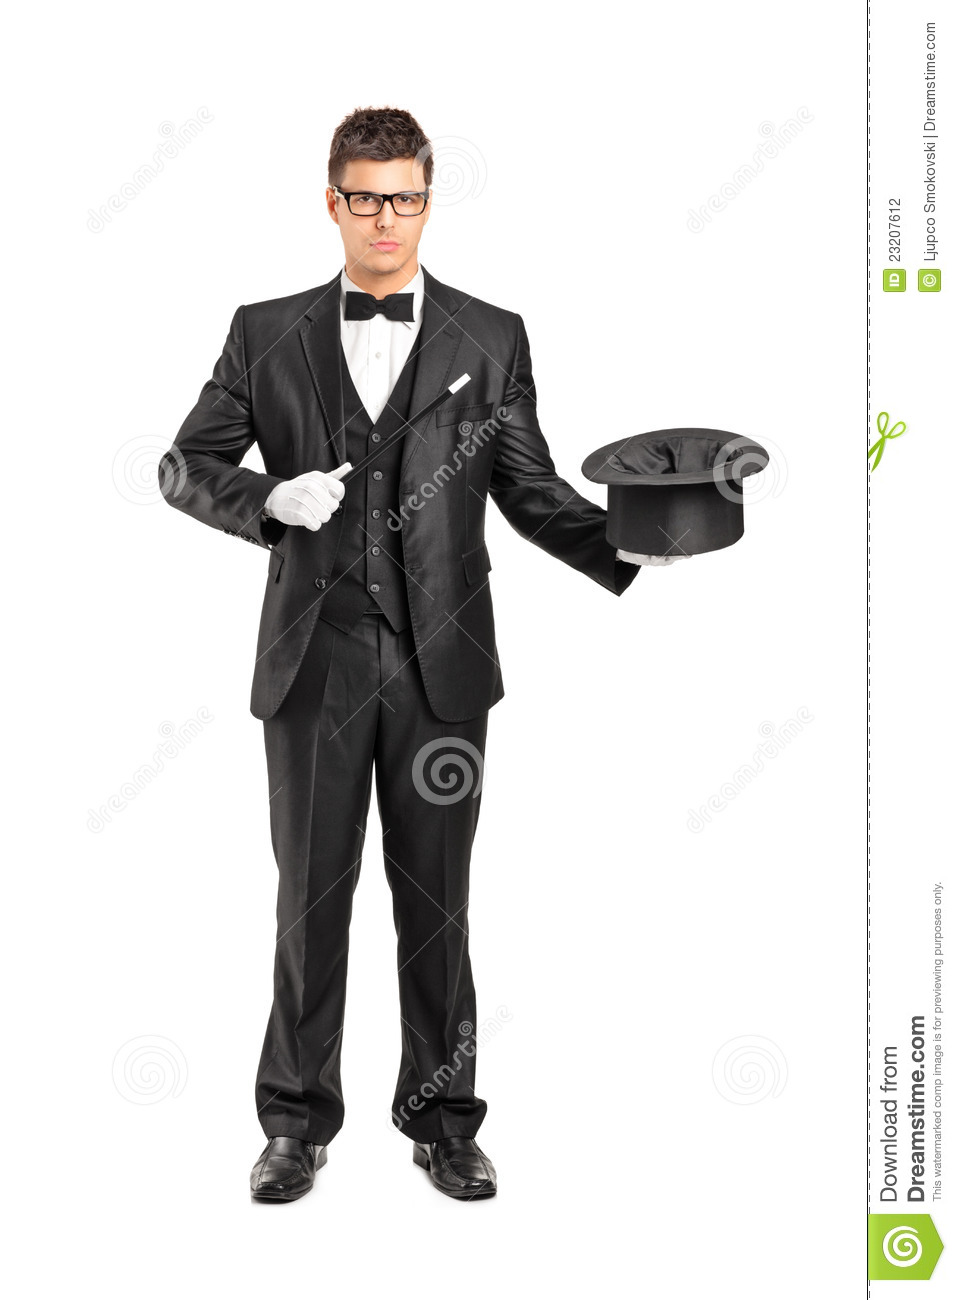 Magician From The Crystal Visions Tarot: Magician Holding A Magic Wand And Top Hat Stock Photo